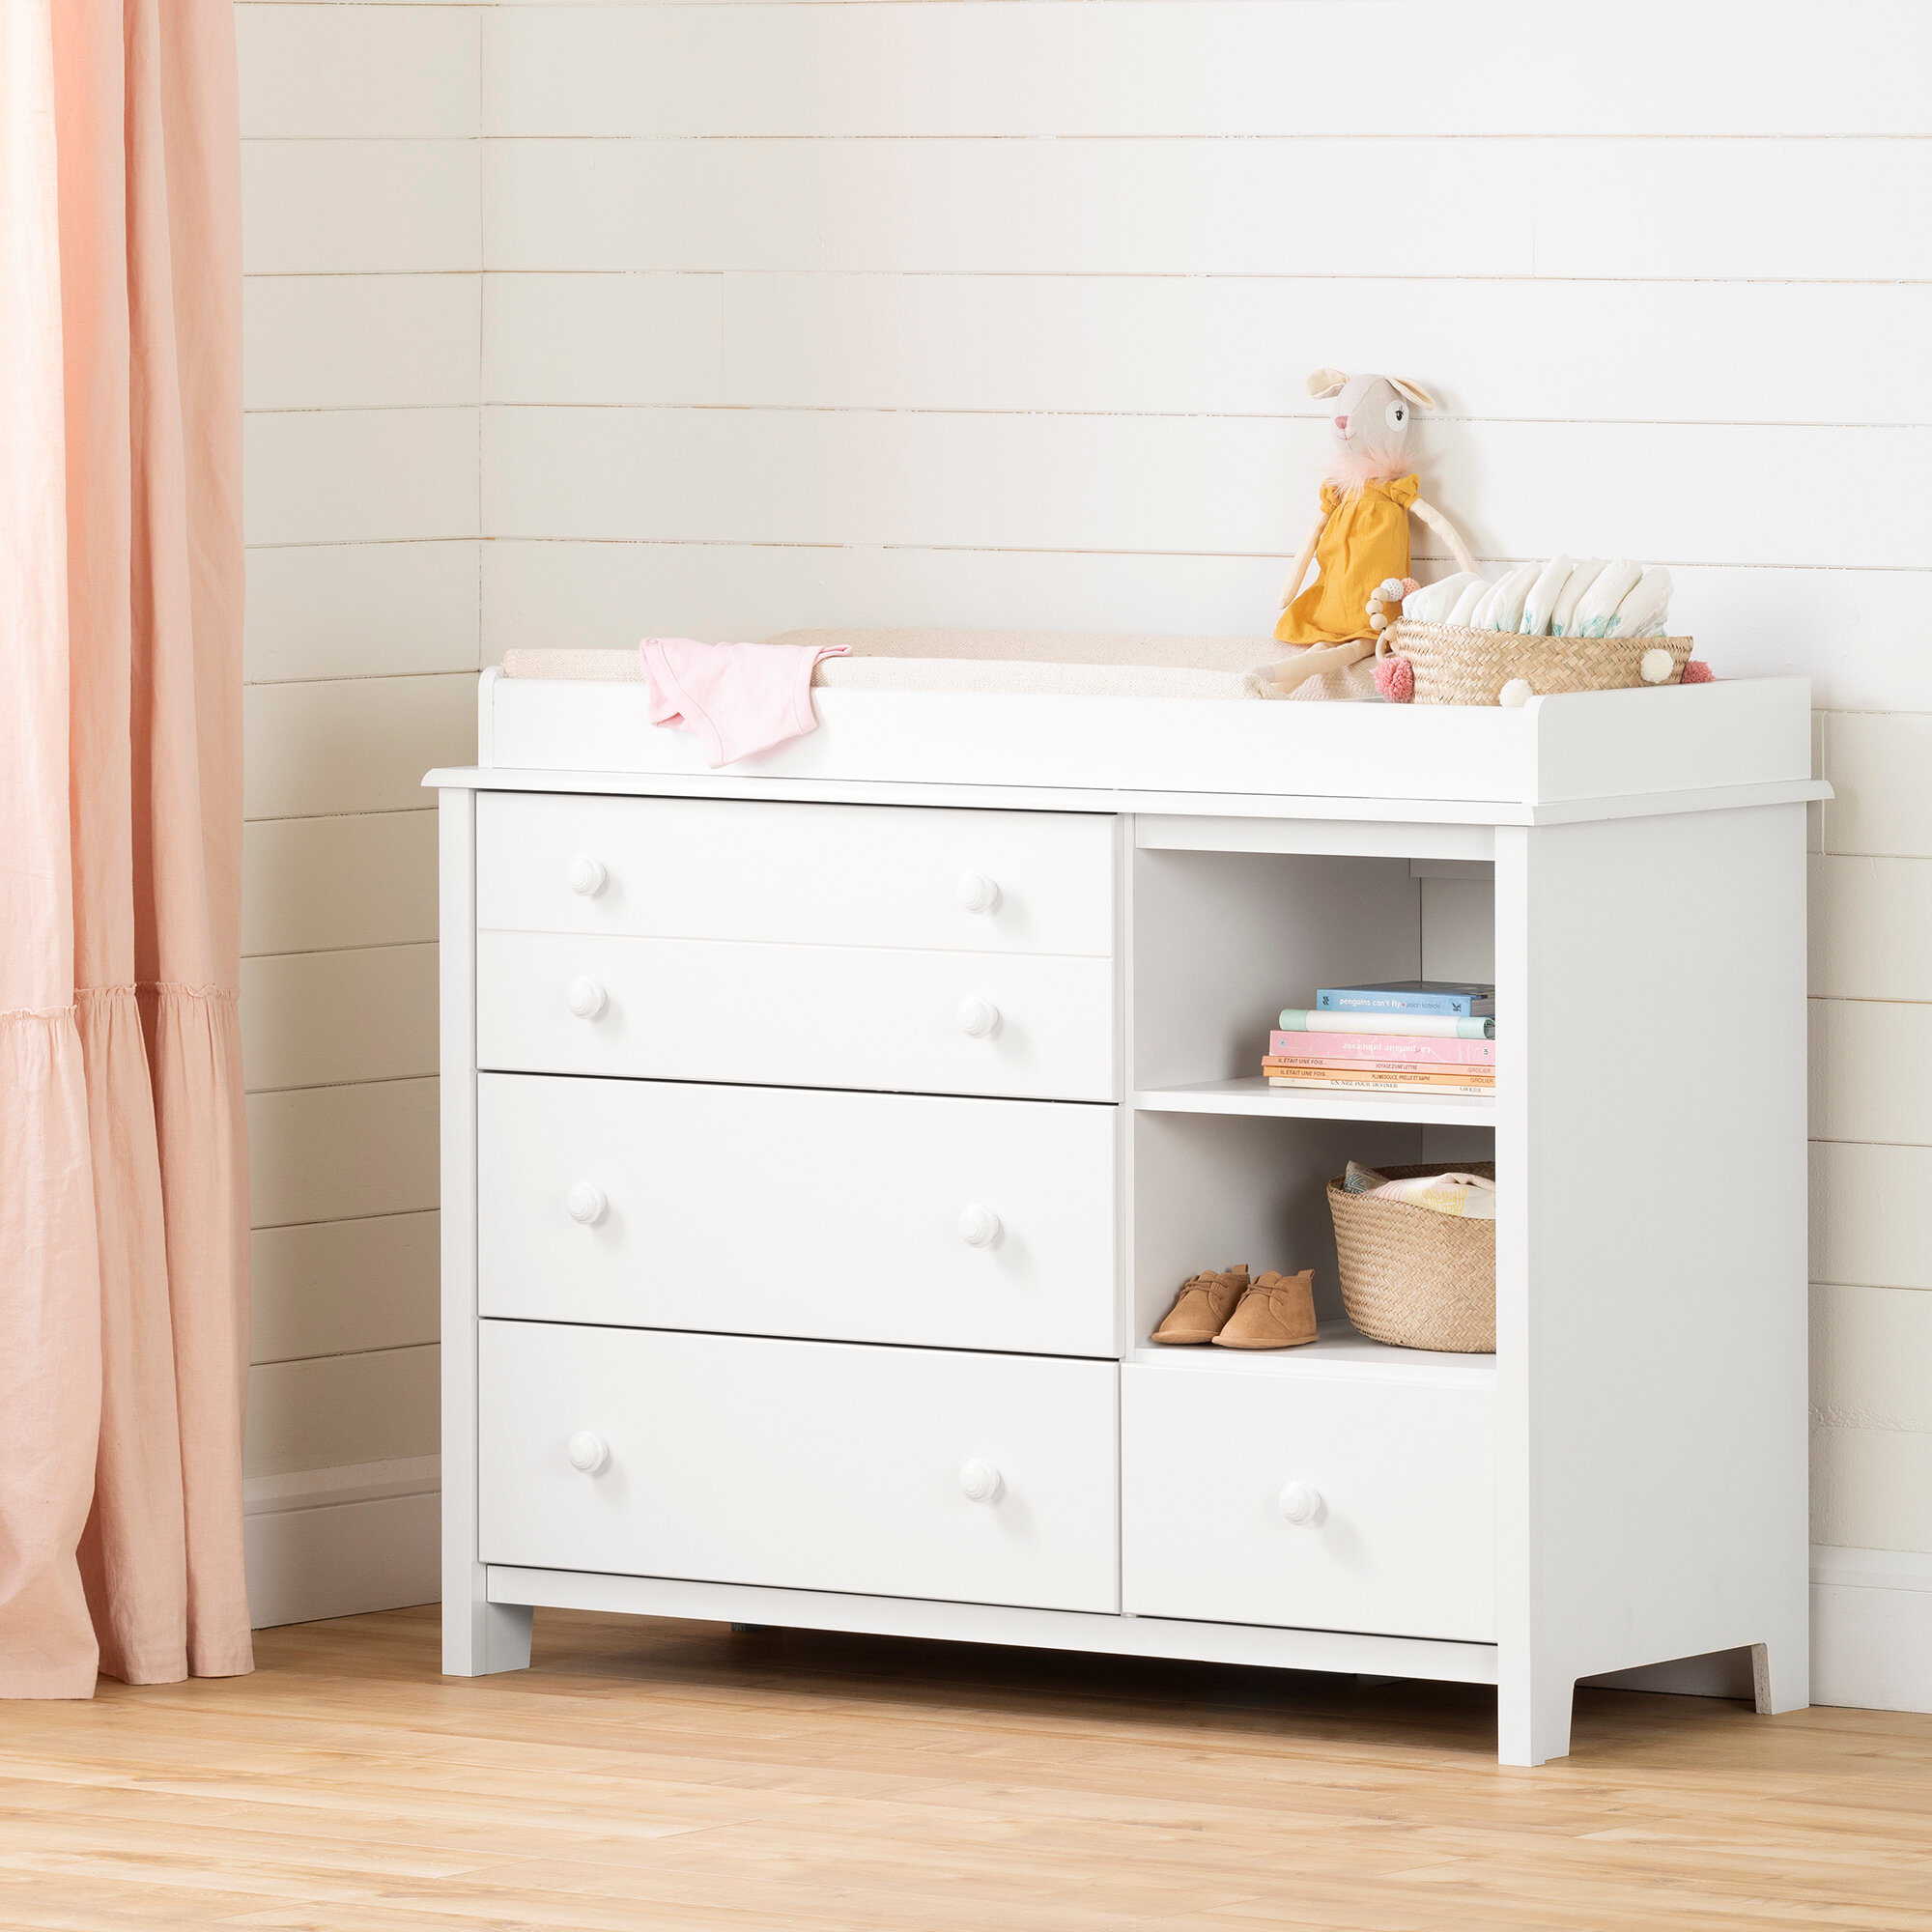 Image of: South Shore Little Smileys Changing Table Dresser Reviews Wayfair Ca